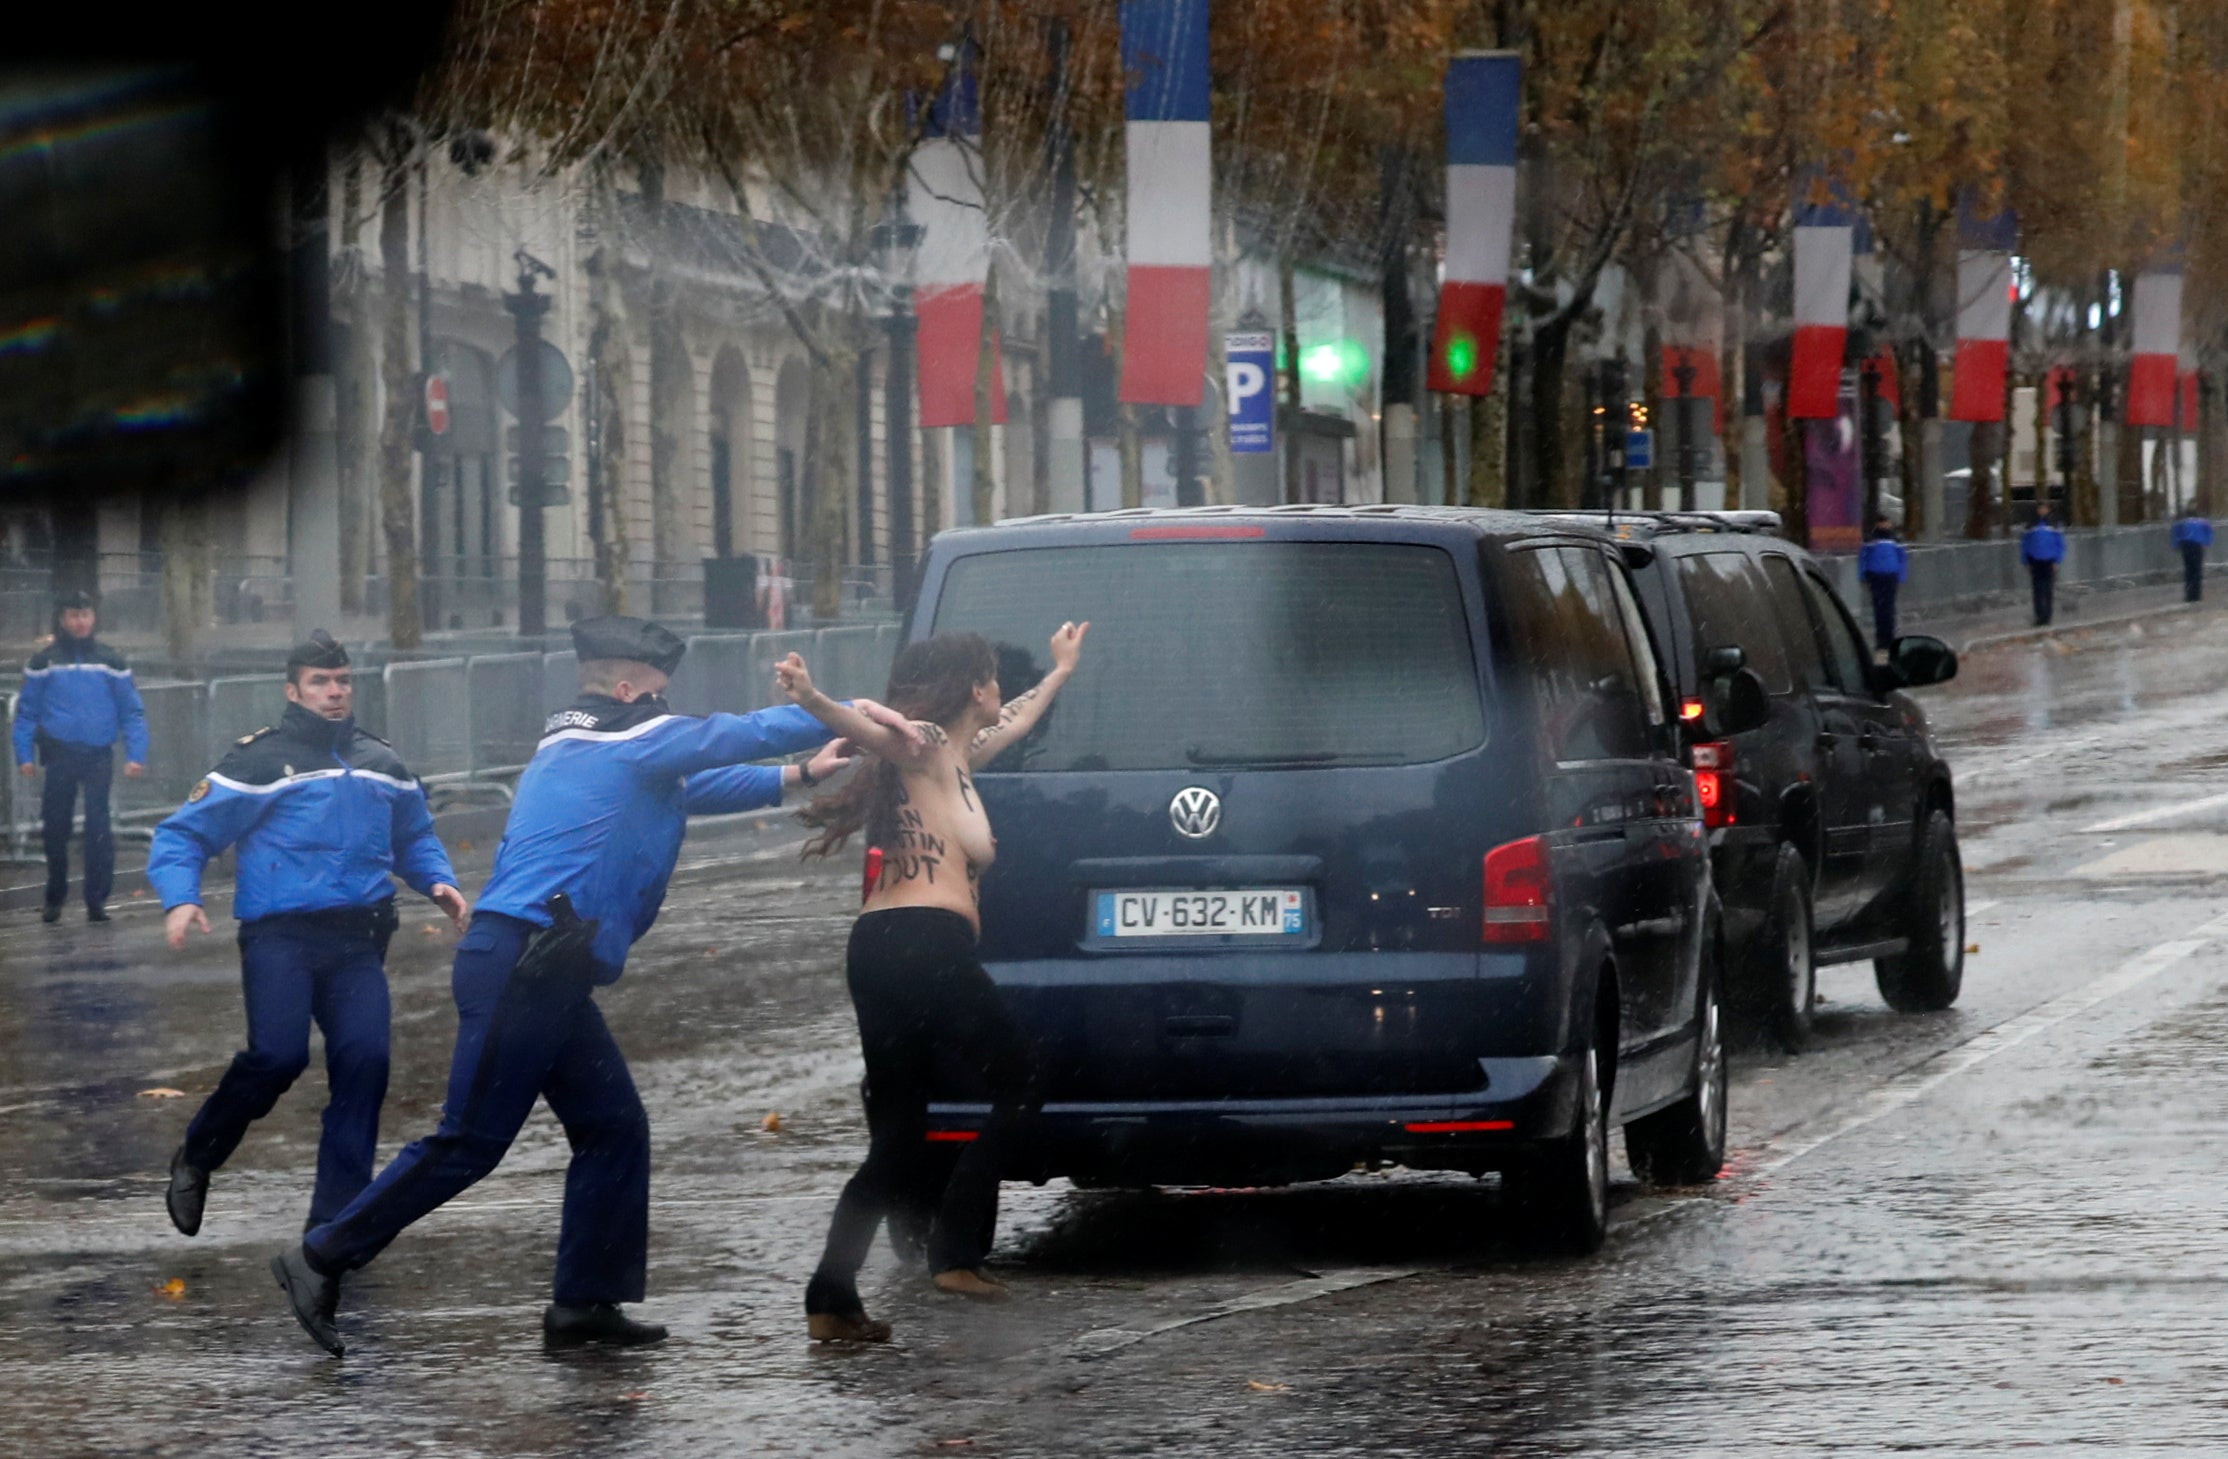 A protester tries to jump into the motorcade of President Donald Trump on his way to the commemoration ceremony for Armistice Day in Paris, France on November 11, 2018.